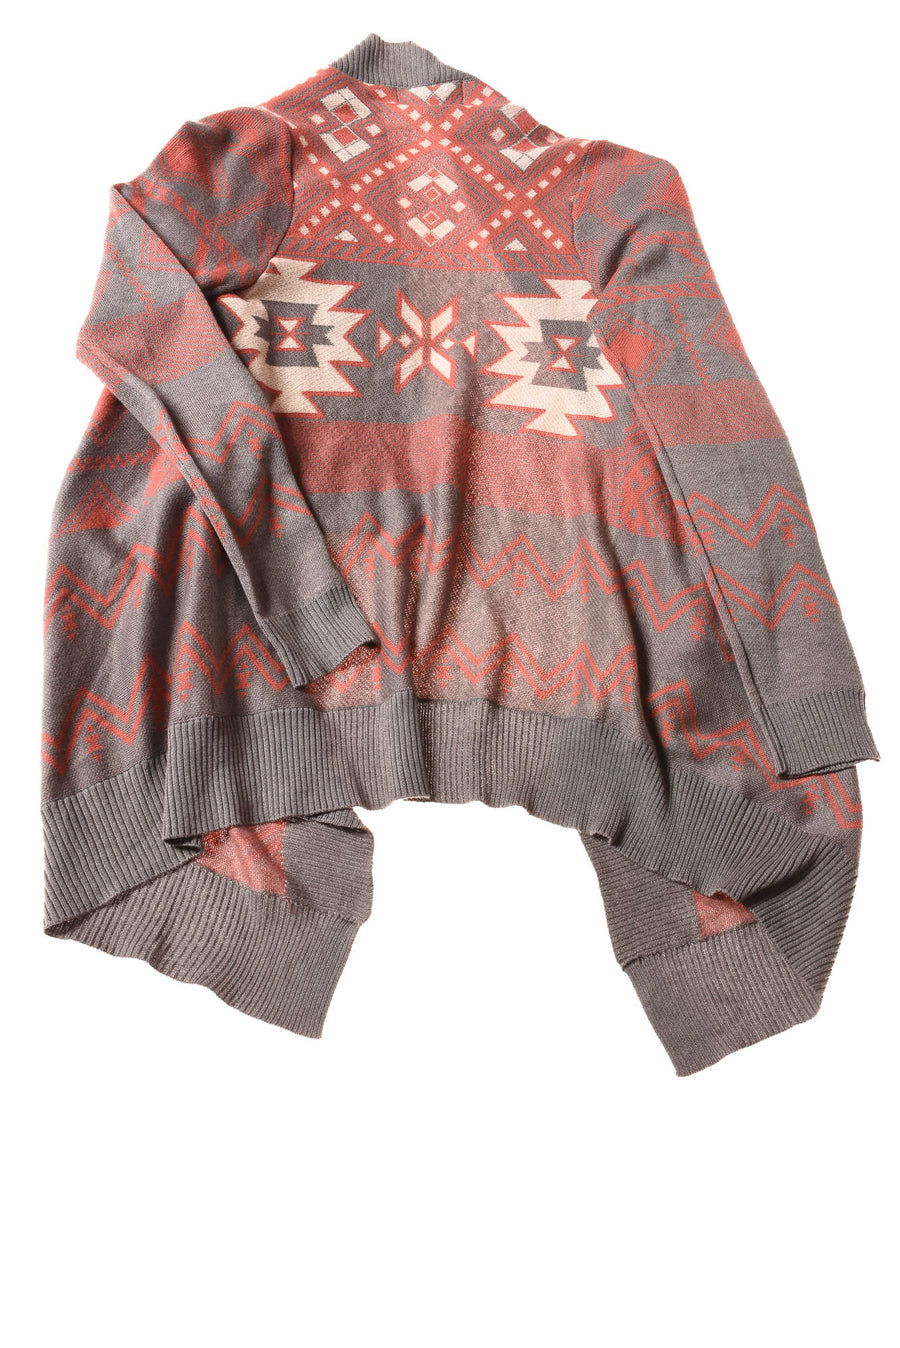 Women's Sweater By Pink Republic